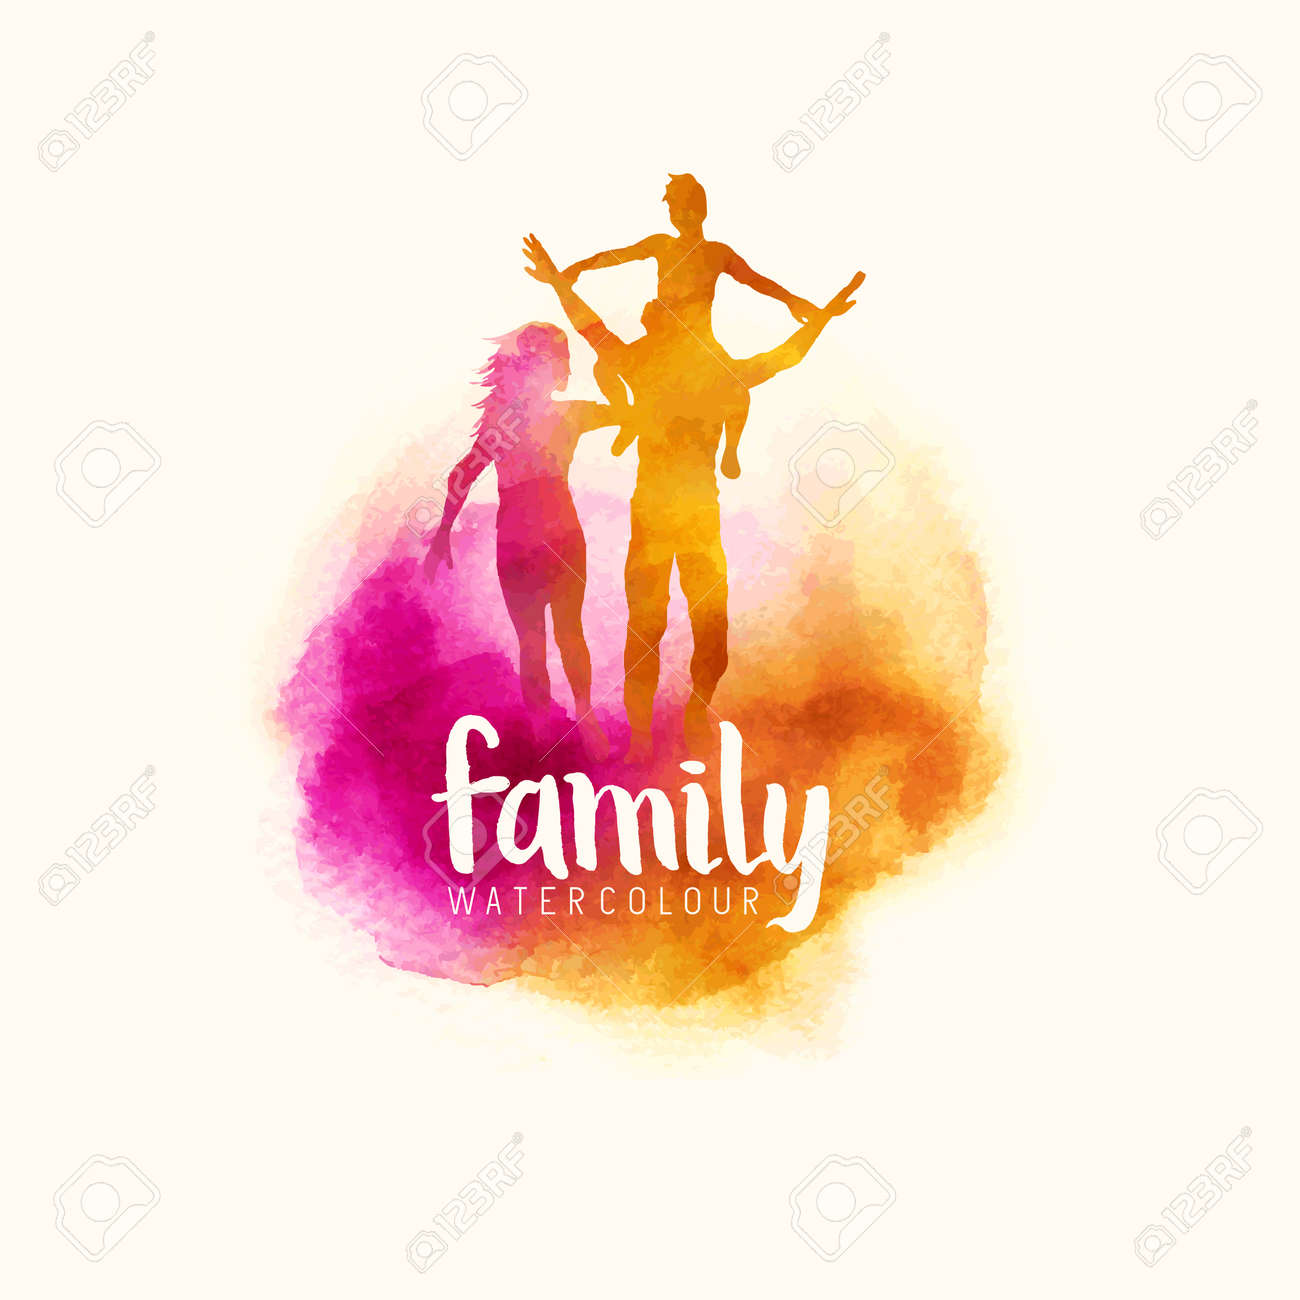 watercolour style family, Parents having fun with their child. vector illustration - 70737573